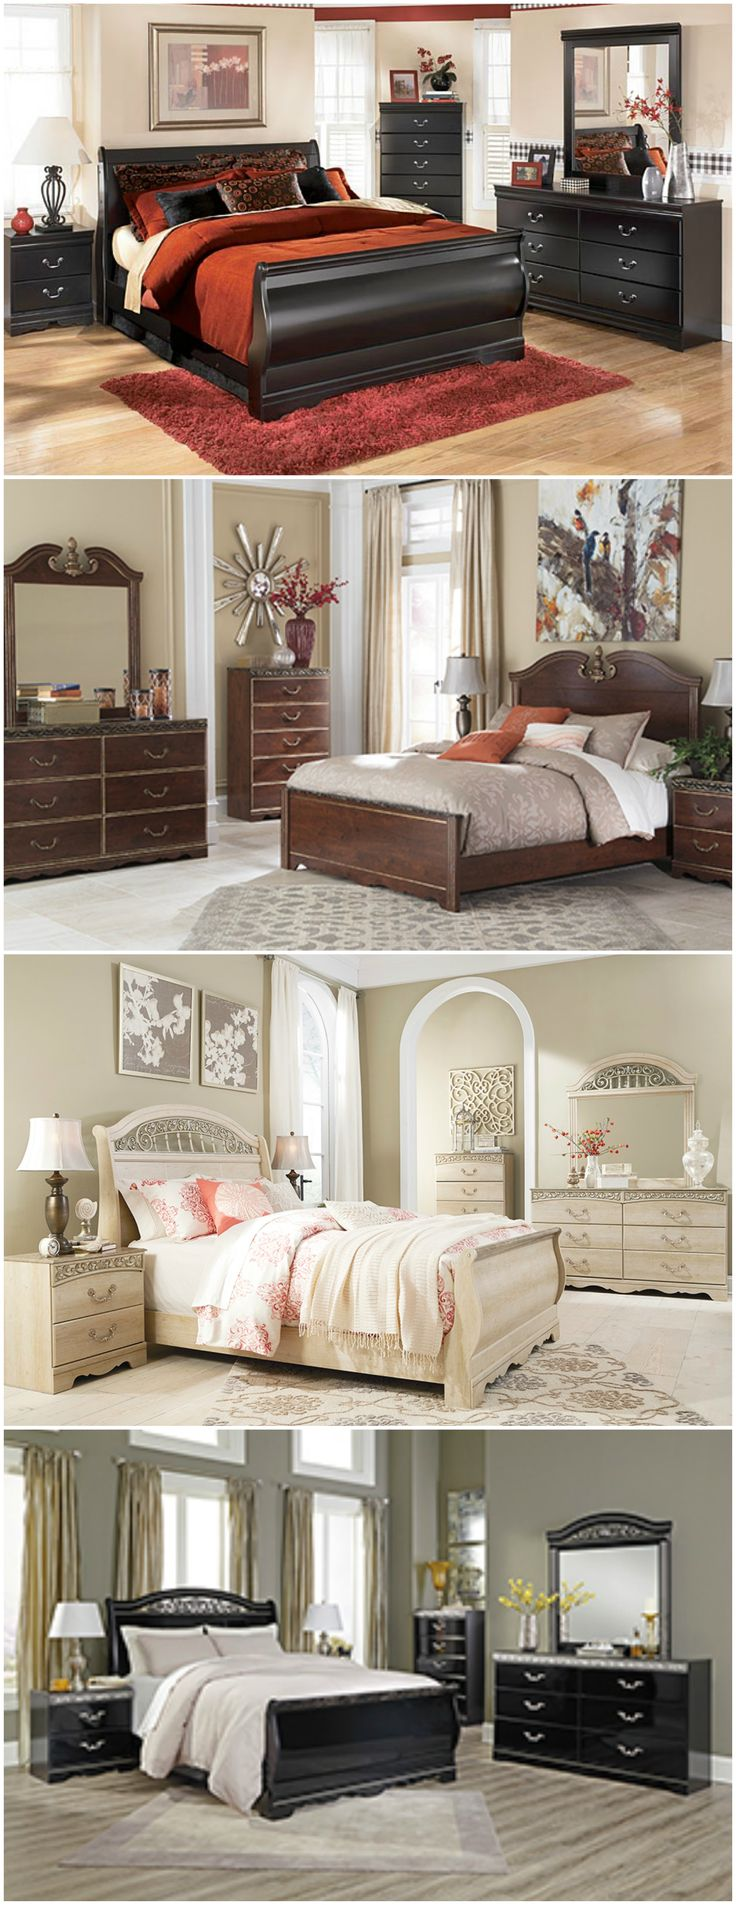 13 Best Bedroom Images On Pinterest Bedroom Ideas Harlem Furniture And Bed Furniture